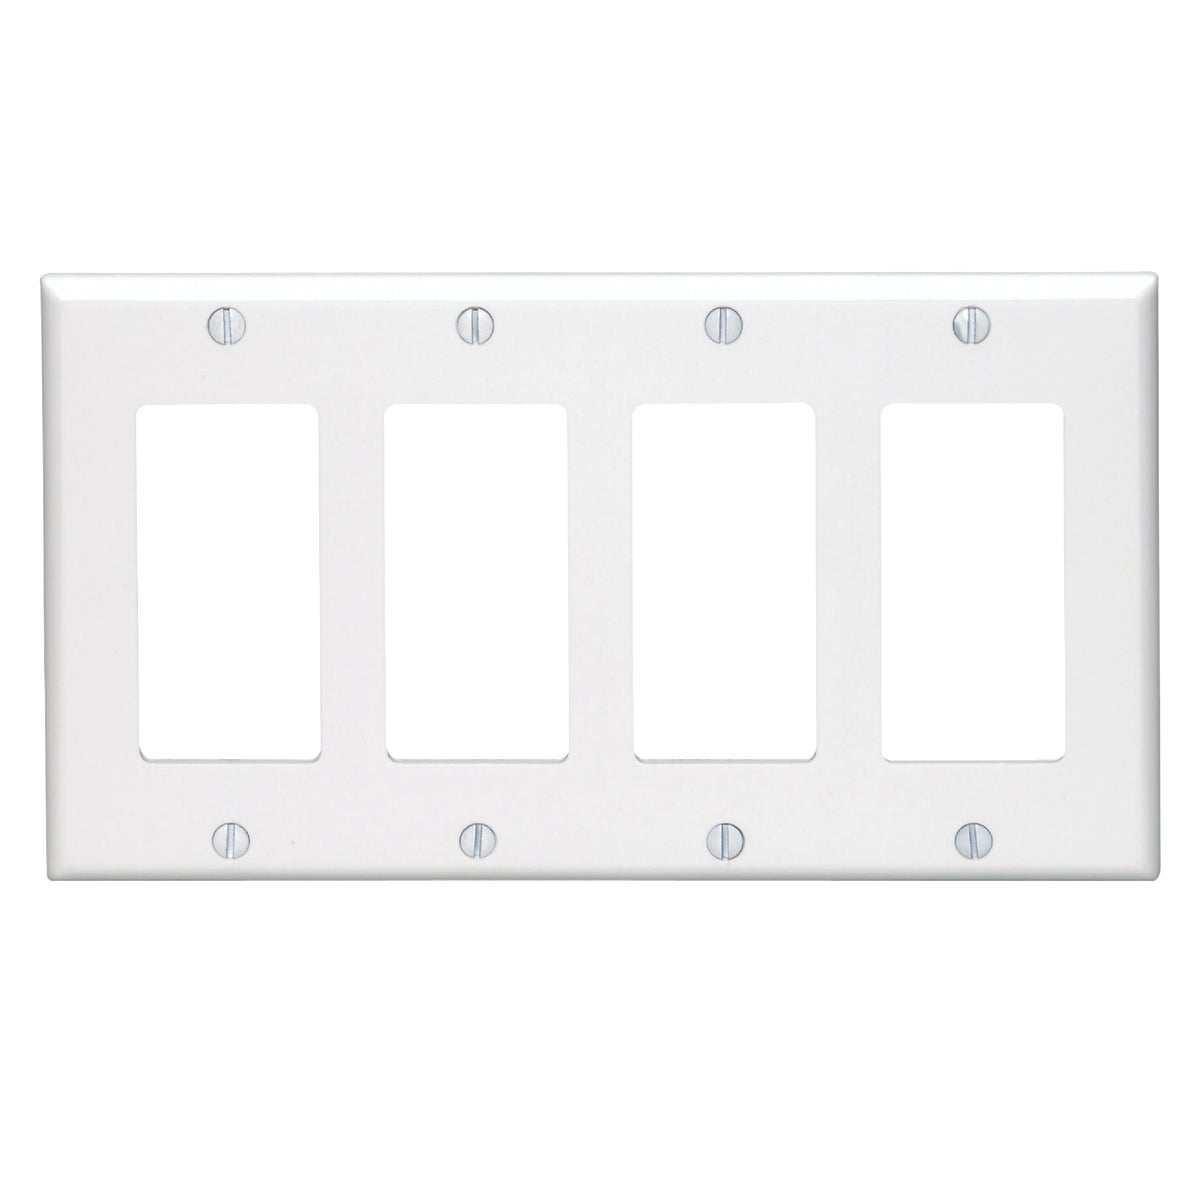 WHT 4-GFI WALL PLATE - 80412W by Leviton Mfg Co